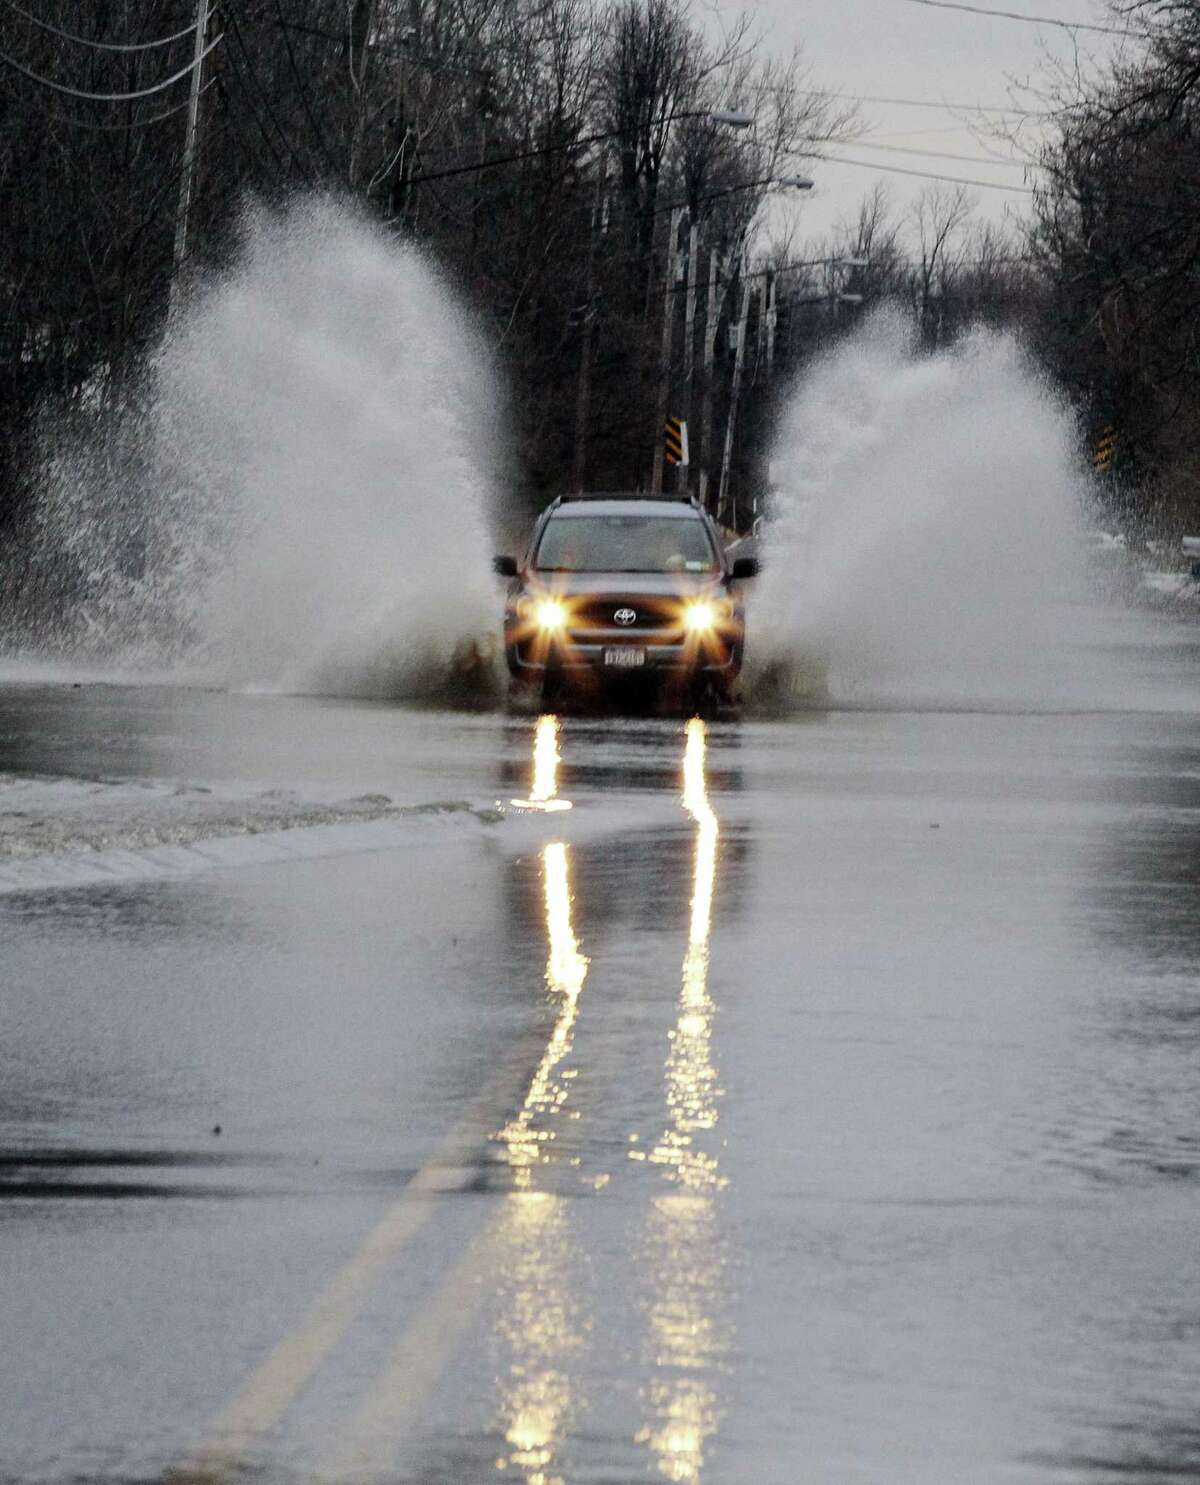 A vehicle blasts its way through a flooded Stony Road, Tuesday, Nov. 25, 2014, in Lancaster, N.Y. Western New York has localized flooding from melting snow following last week's lake-effect snow. (AP Photo/Gary Wiepert)